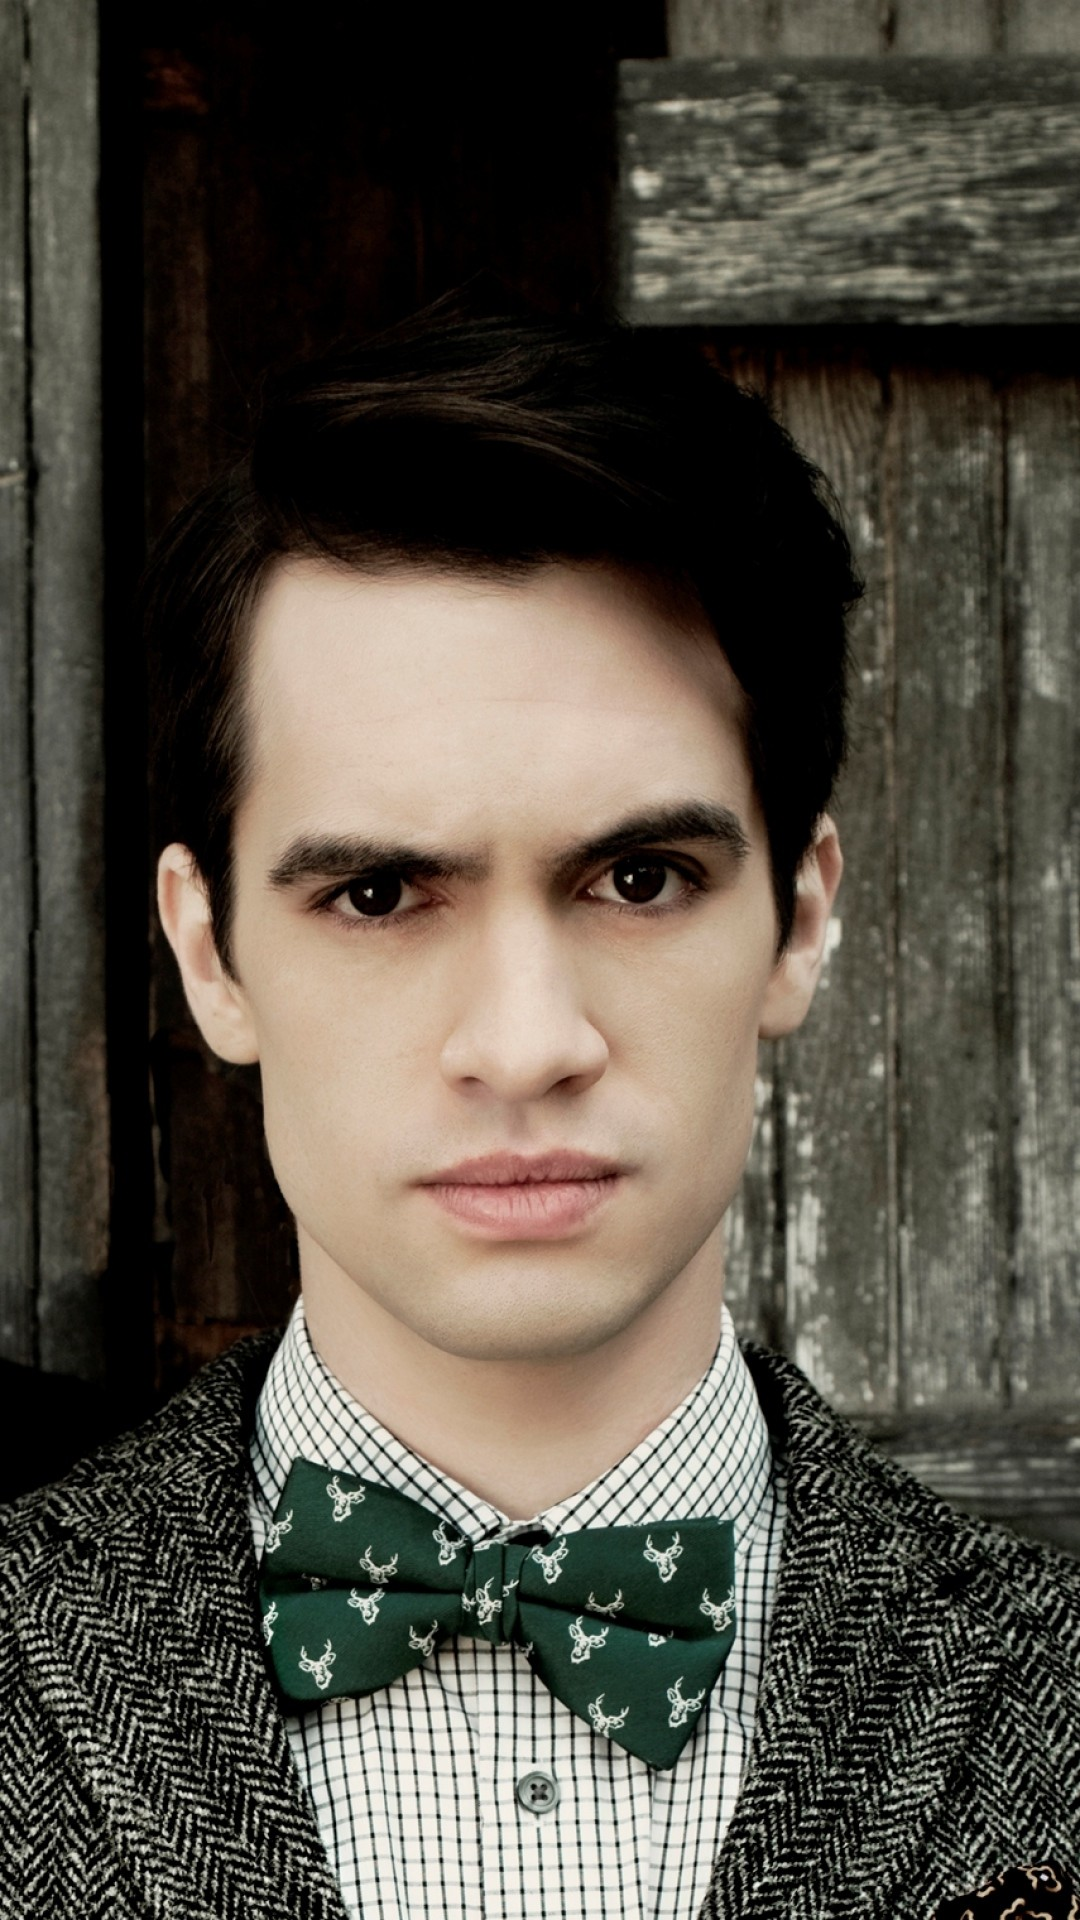 Wallpaper panic at the disco, brendon urie, spencer smith